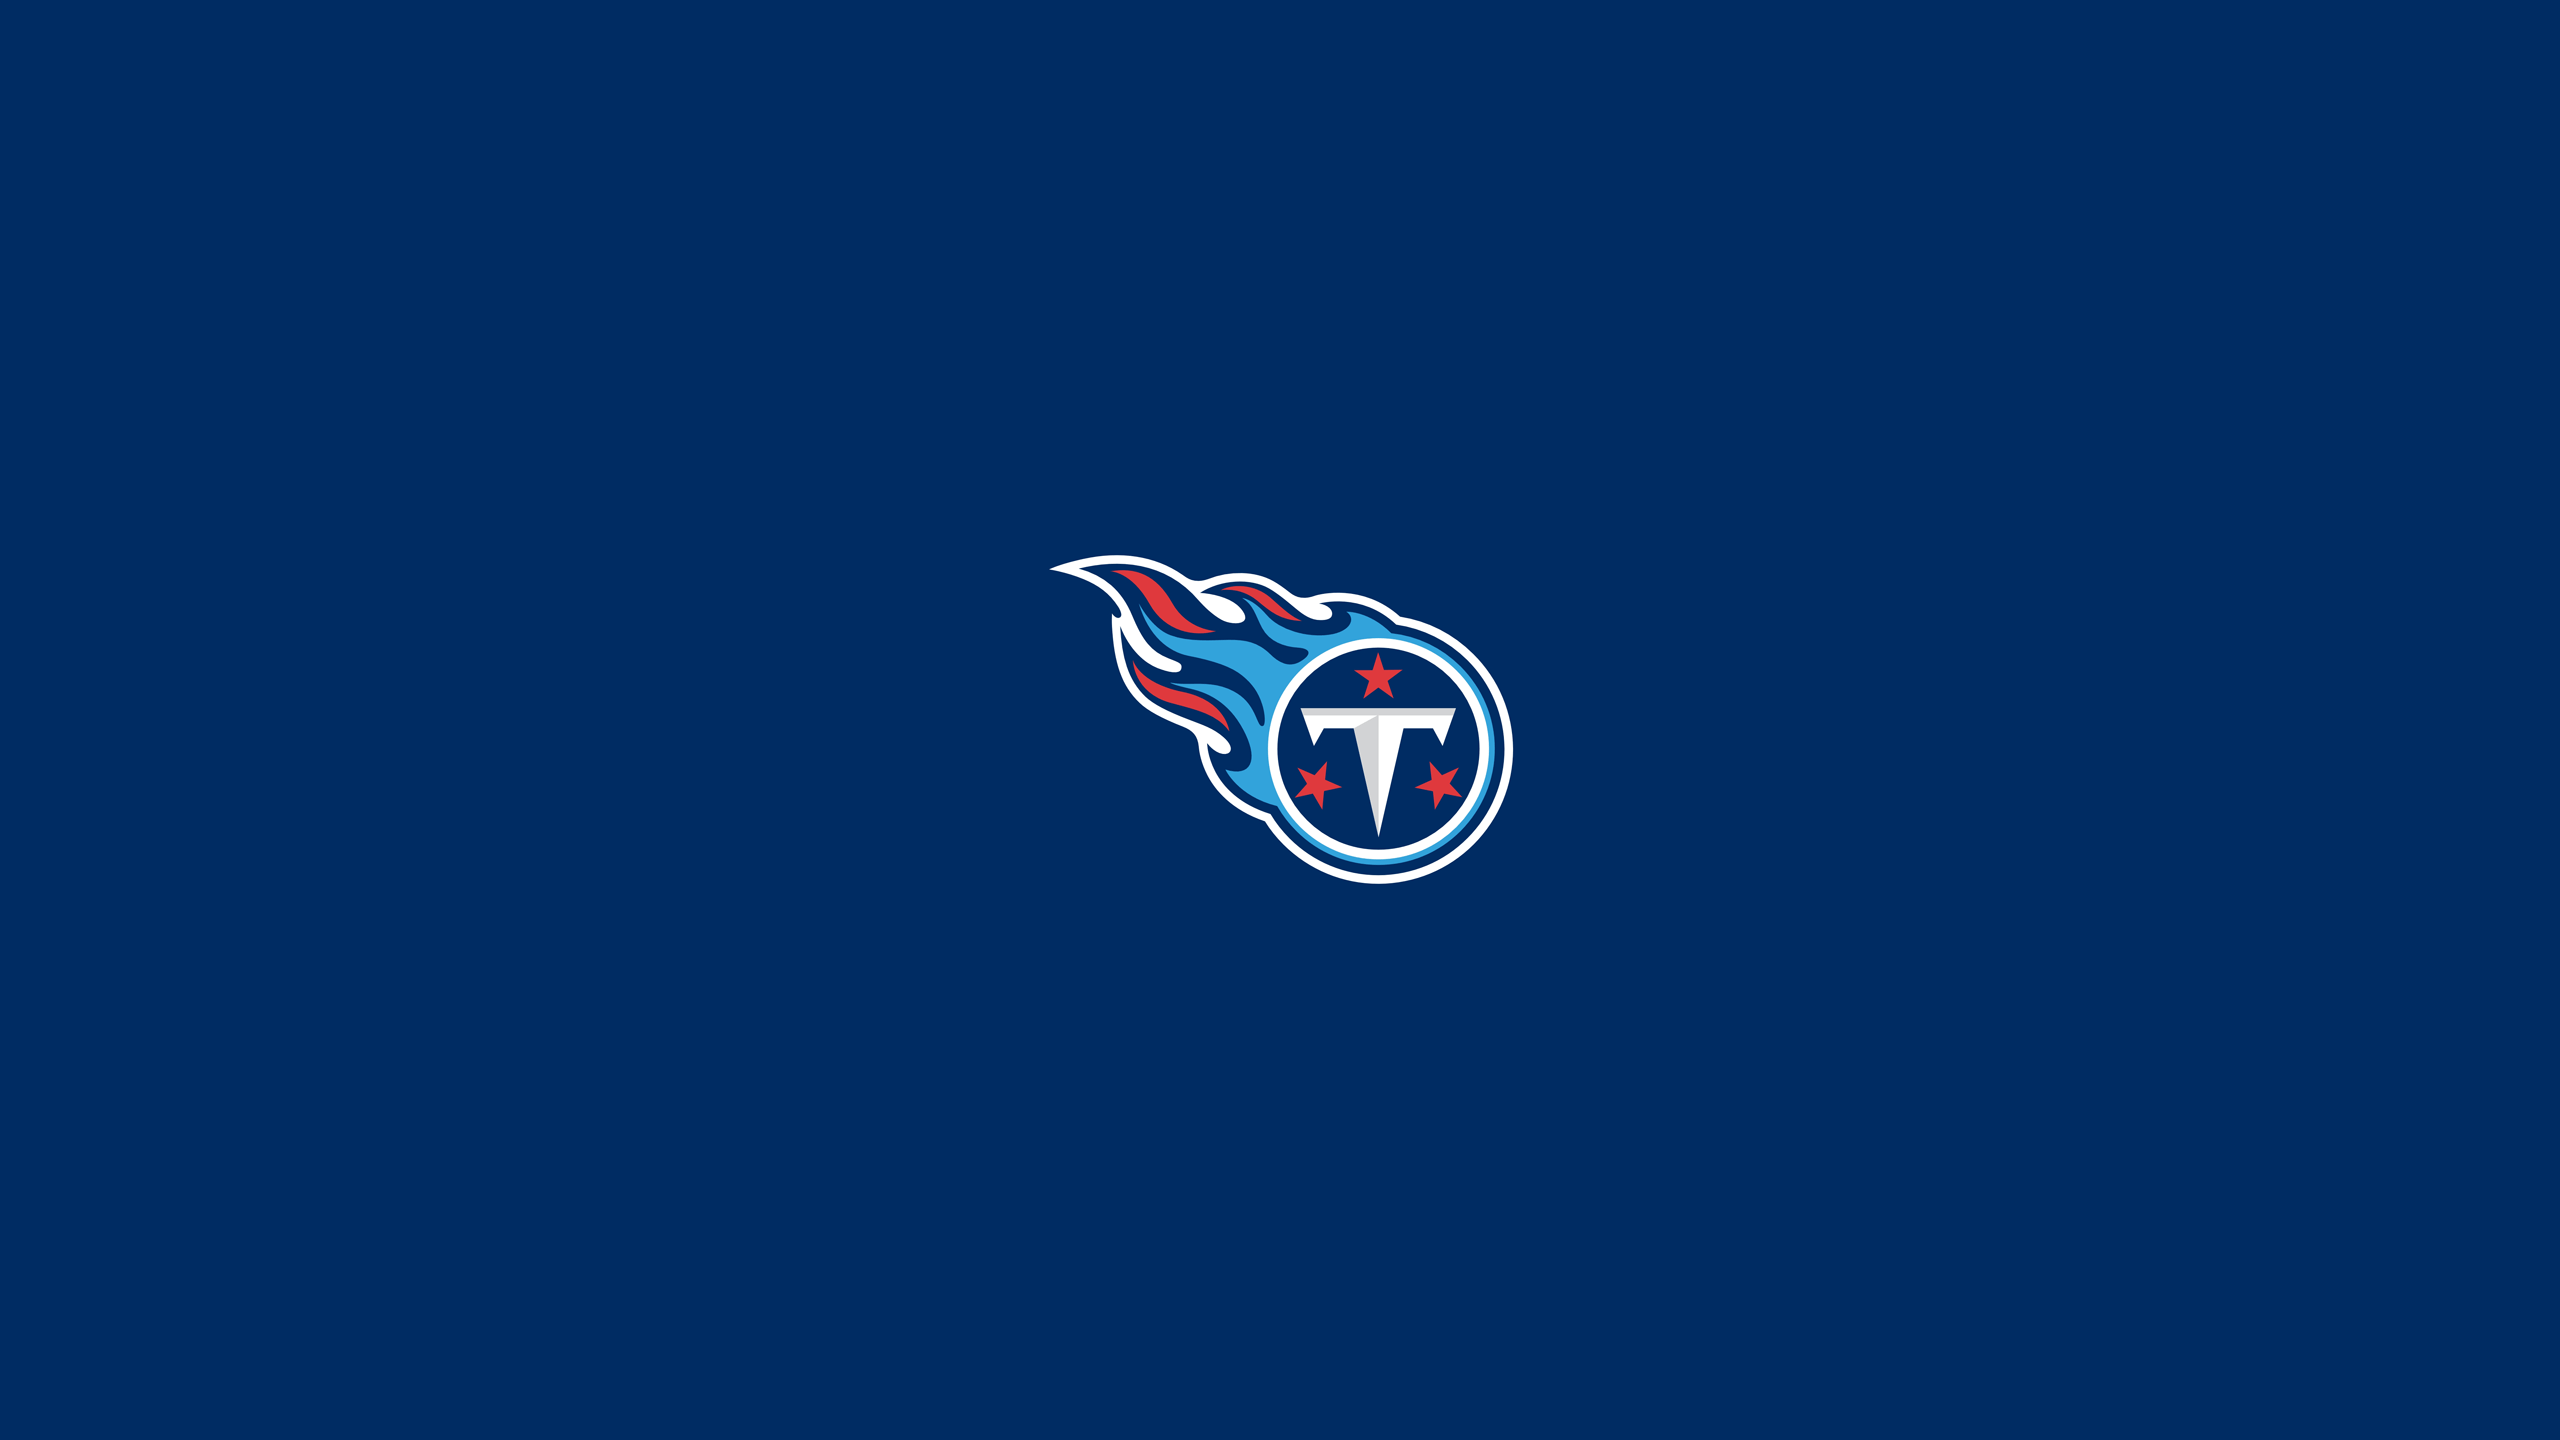 2016 Tennessee Titans HDQ Wallpapers, High Resolution Backgrounds